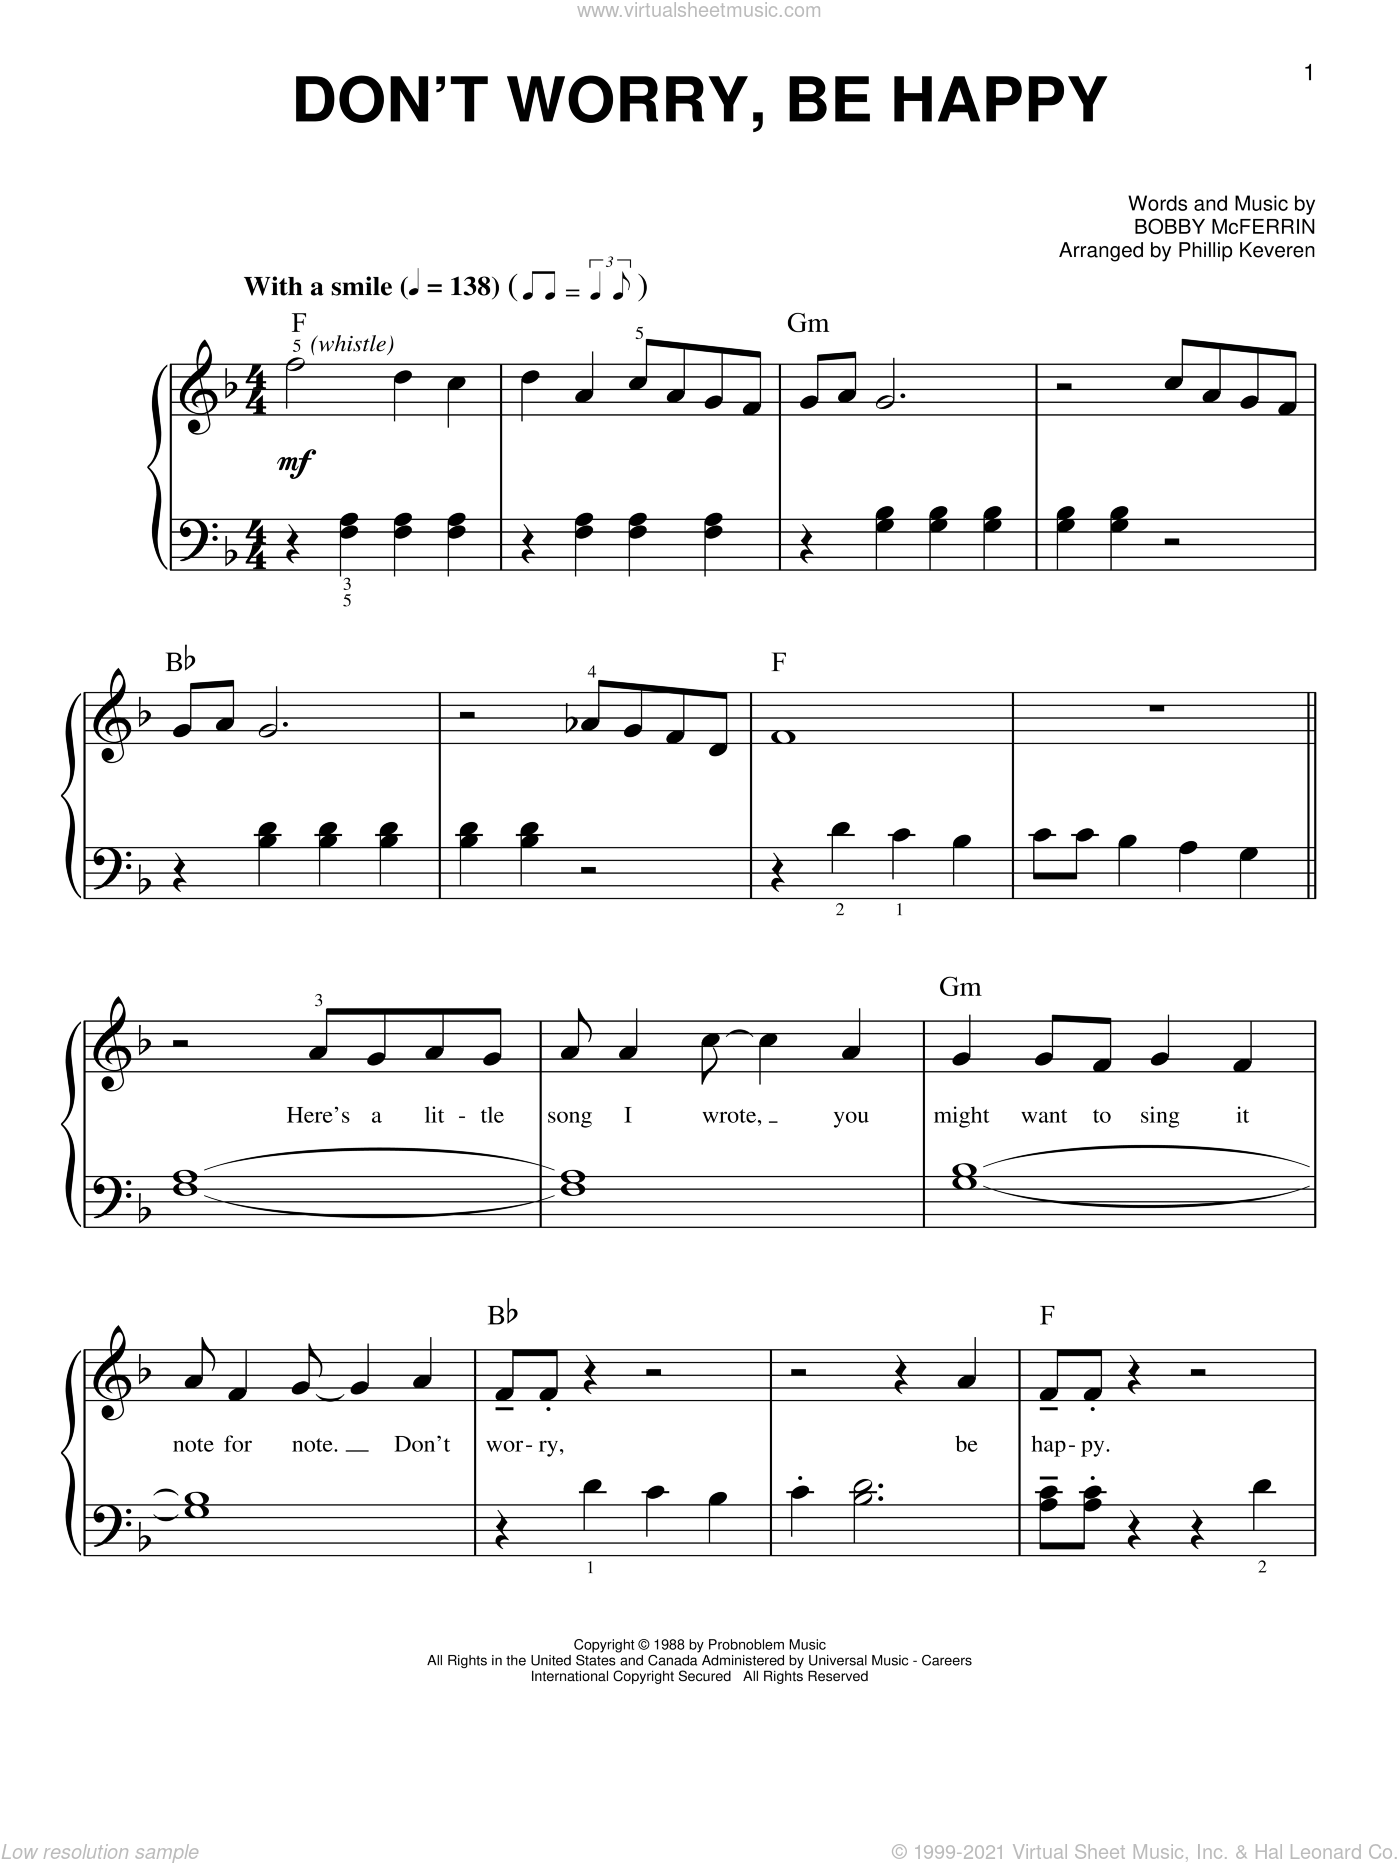 Don't Worry, Be Happy sheet music for piano solo by Bobby McFerrin and Phillip Keveren, easy. Score Image Preview.